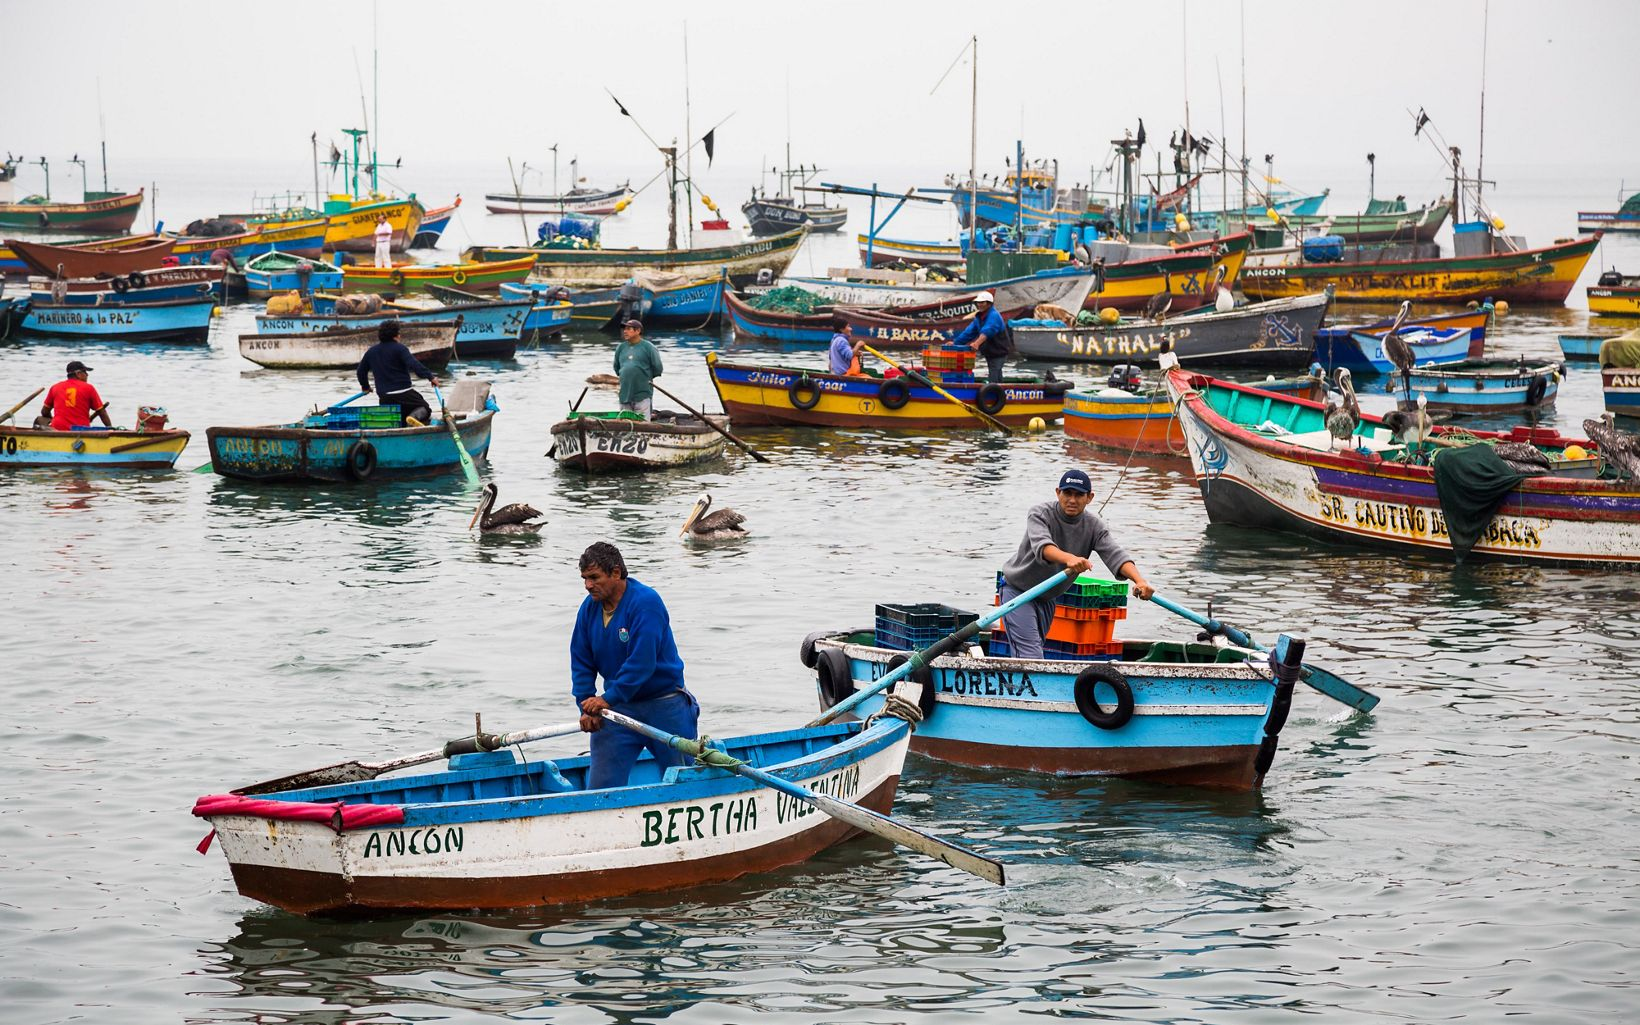 in Ancón, Peru. Ancón is a small fishing town and seaside vacation destination about an hour north of Lima.